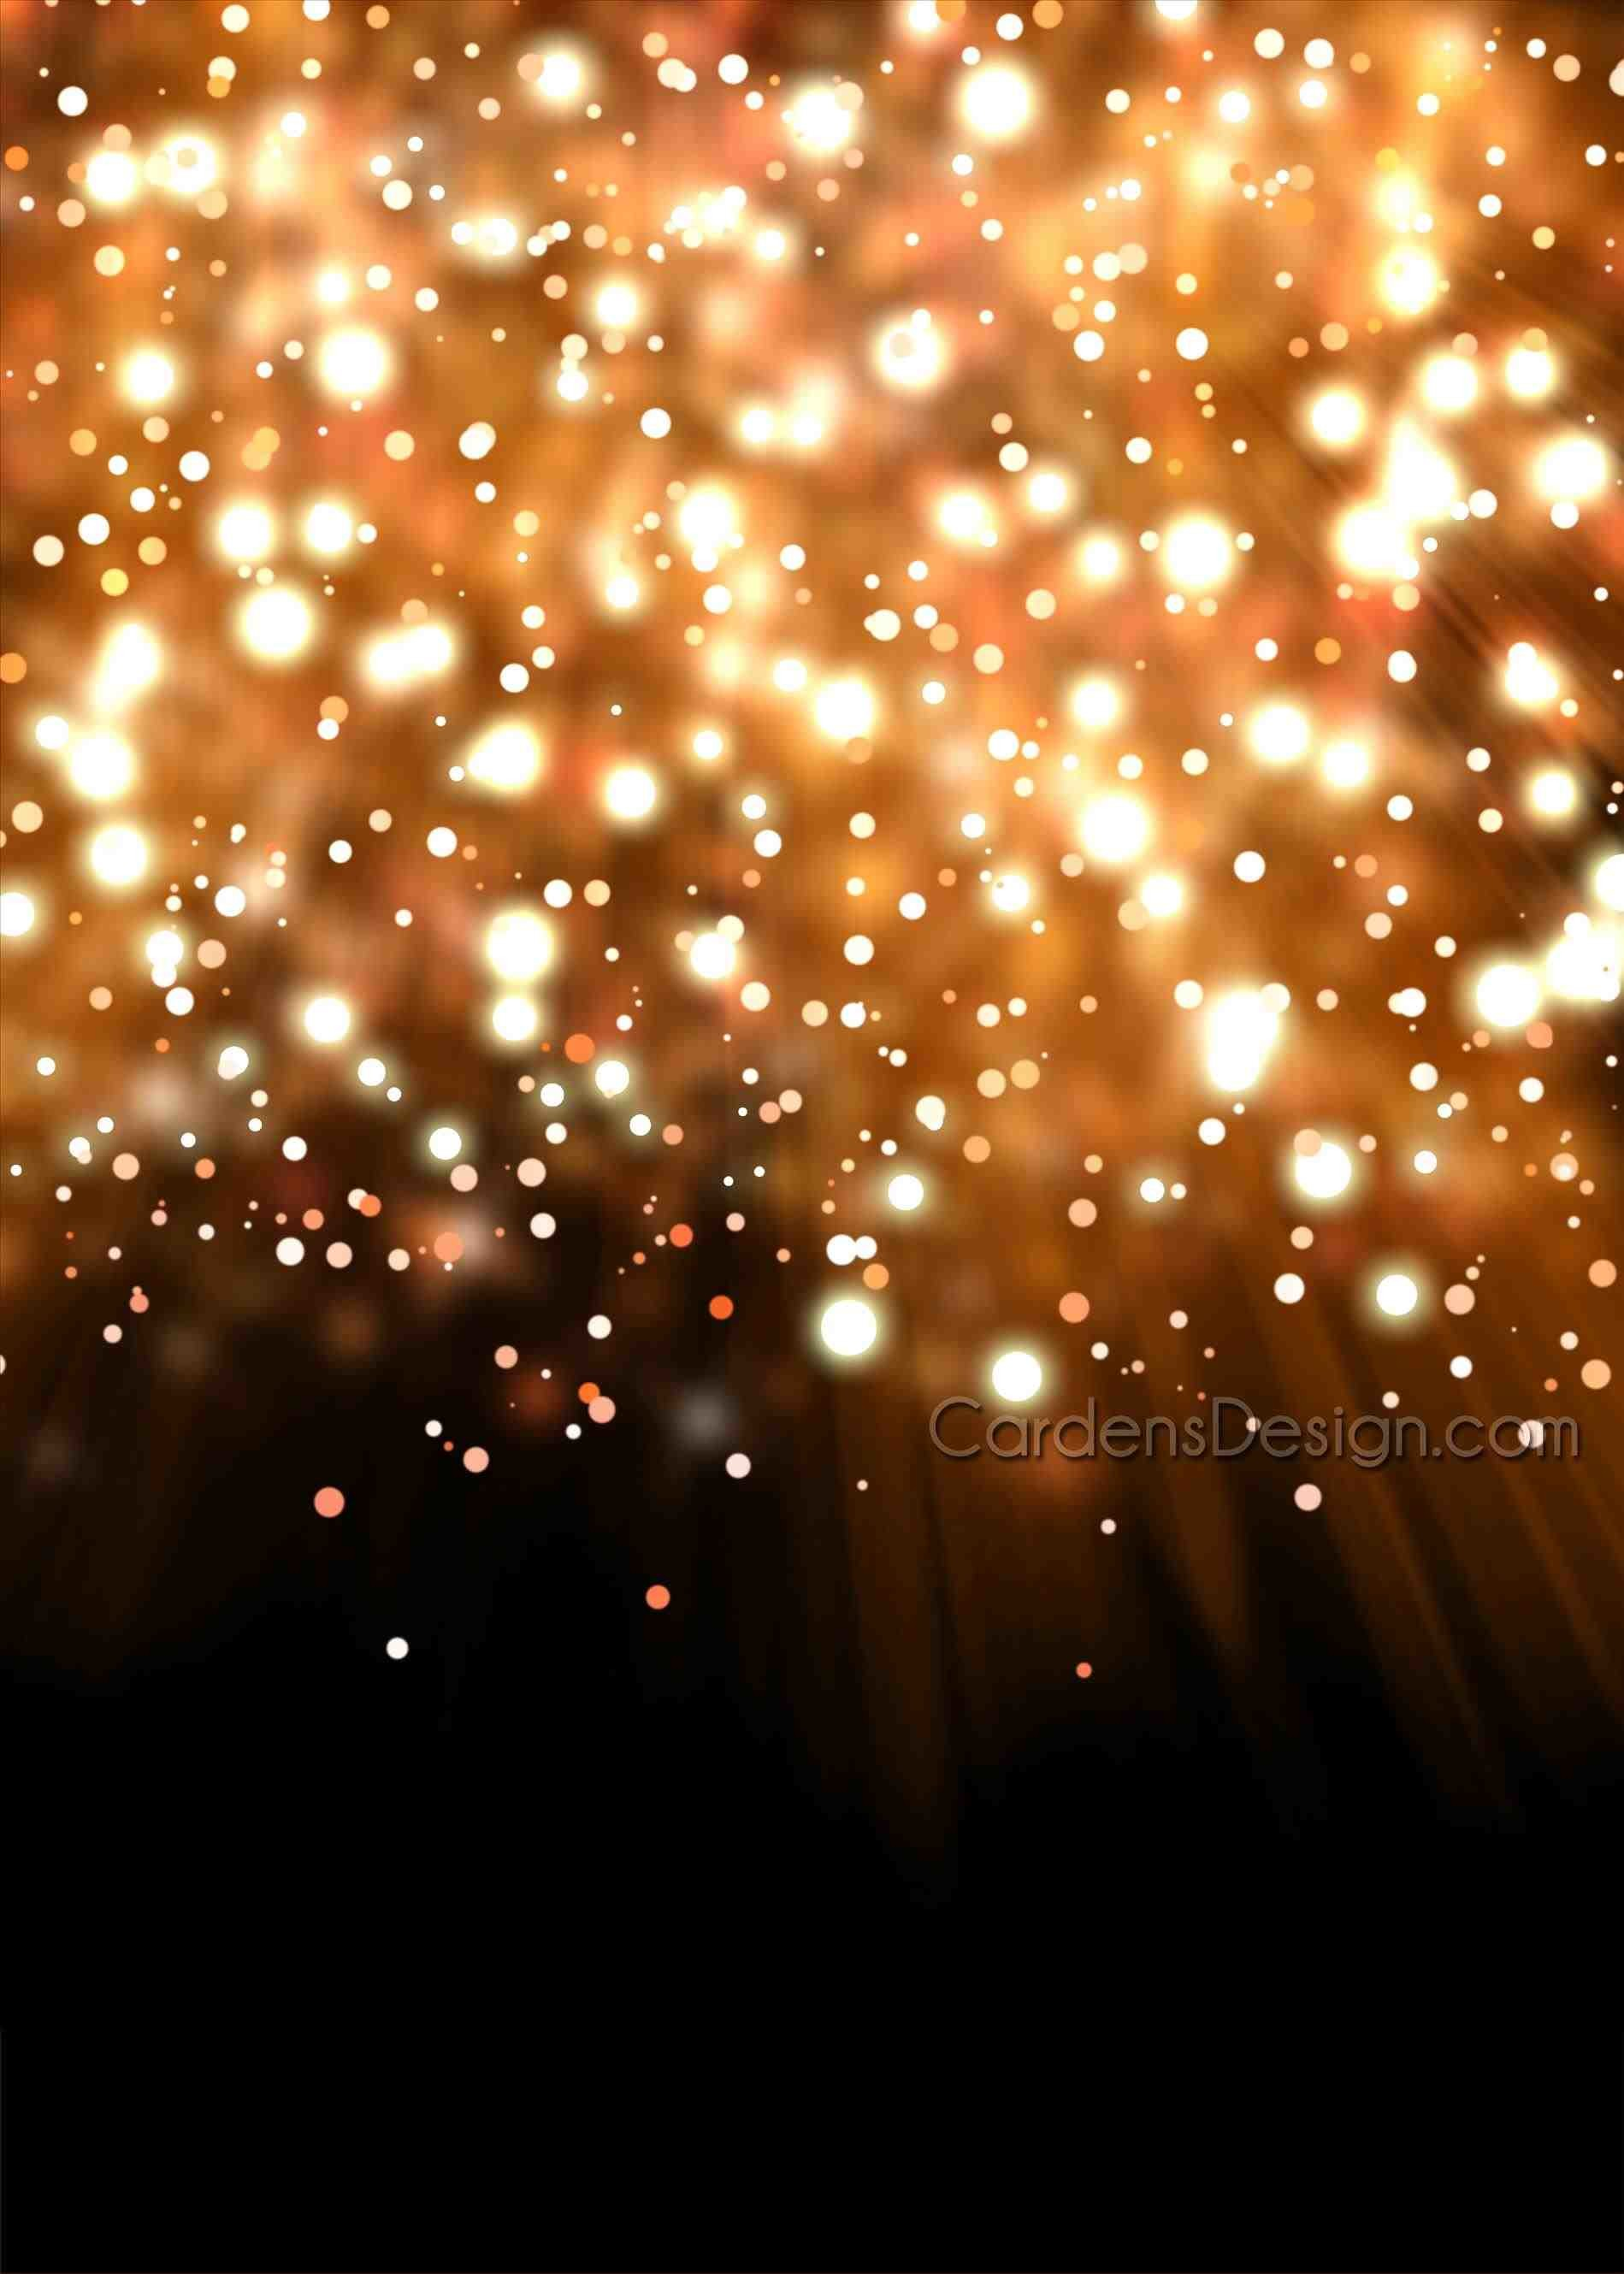 2560x1600 Christmas Lights Backgrounds